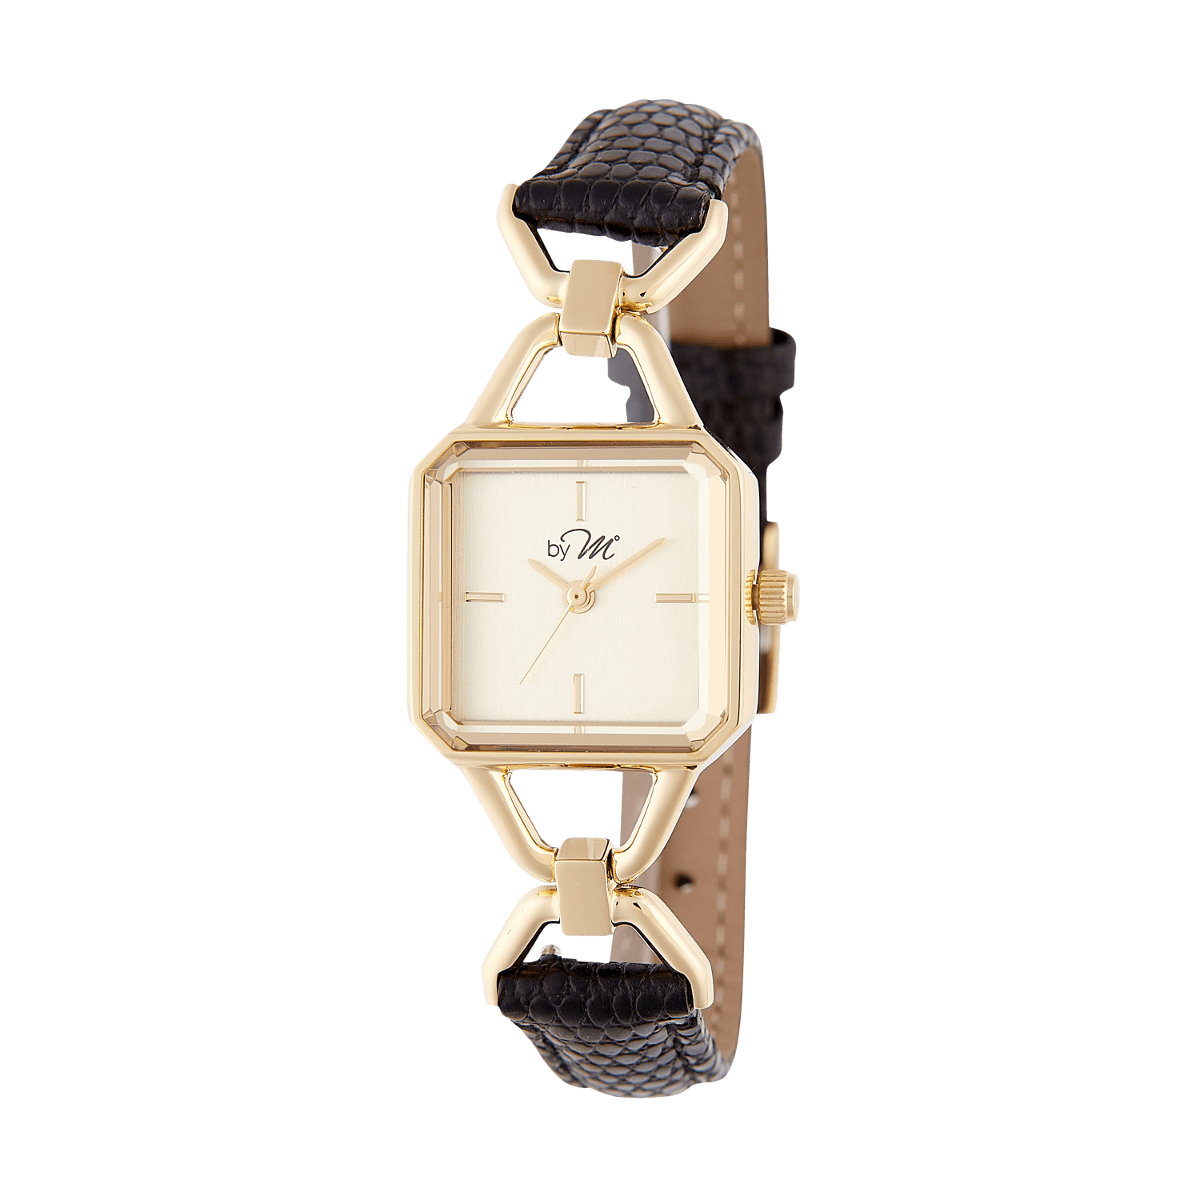 Vintage inspired design women's watch - Vanessa Stylez Boutique